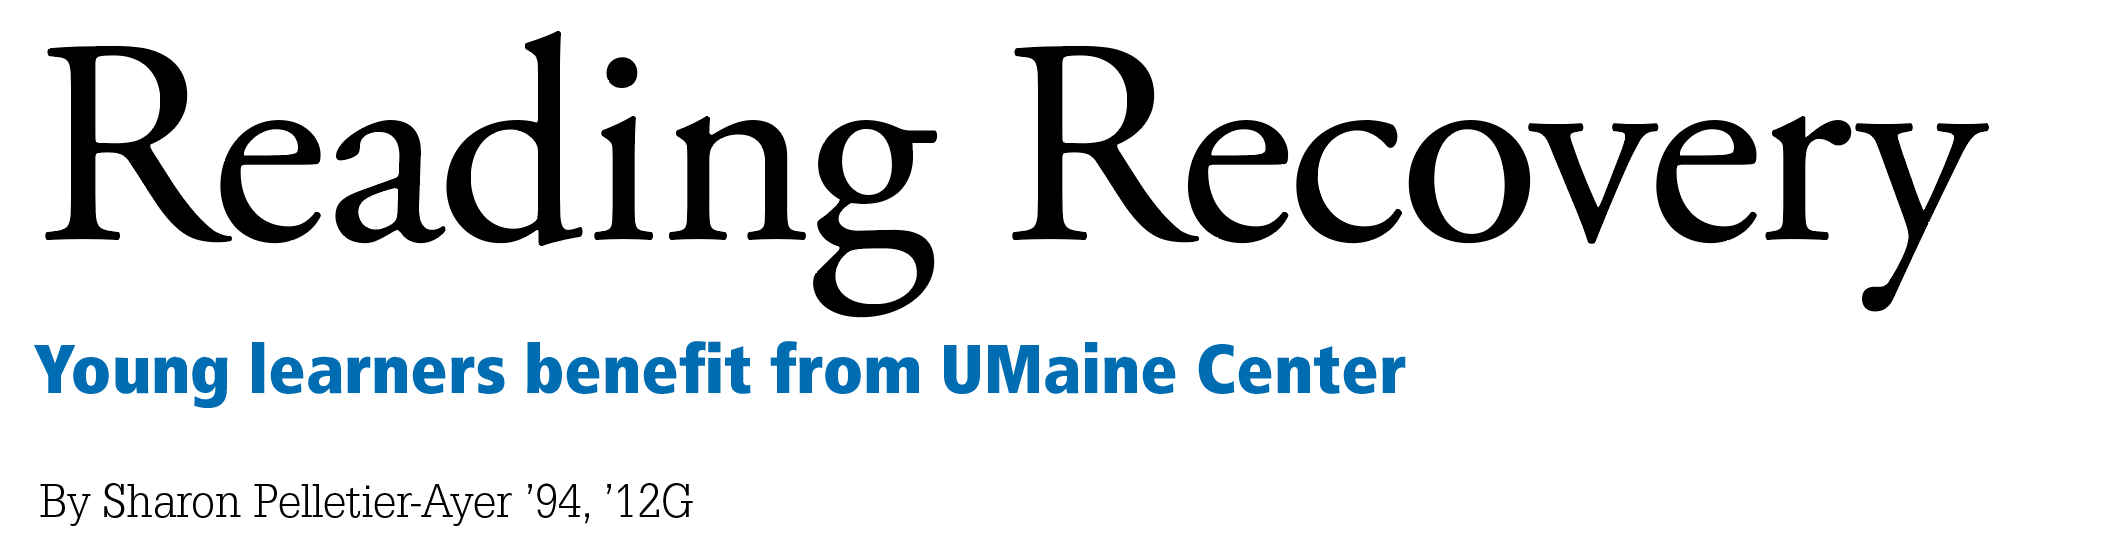 Reading Recovery - Young learners benefit from UMaine Center By Sharon Pelletier-Ayer '94, '12G